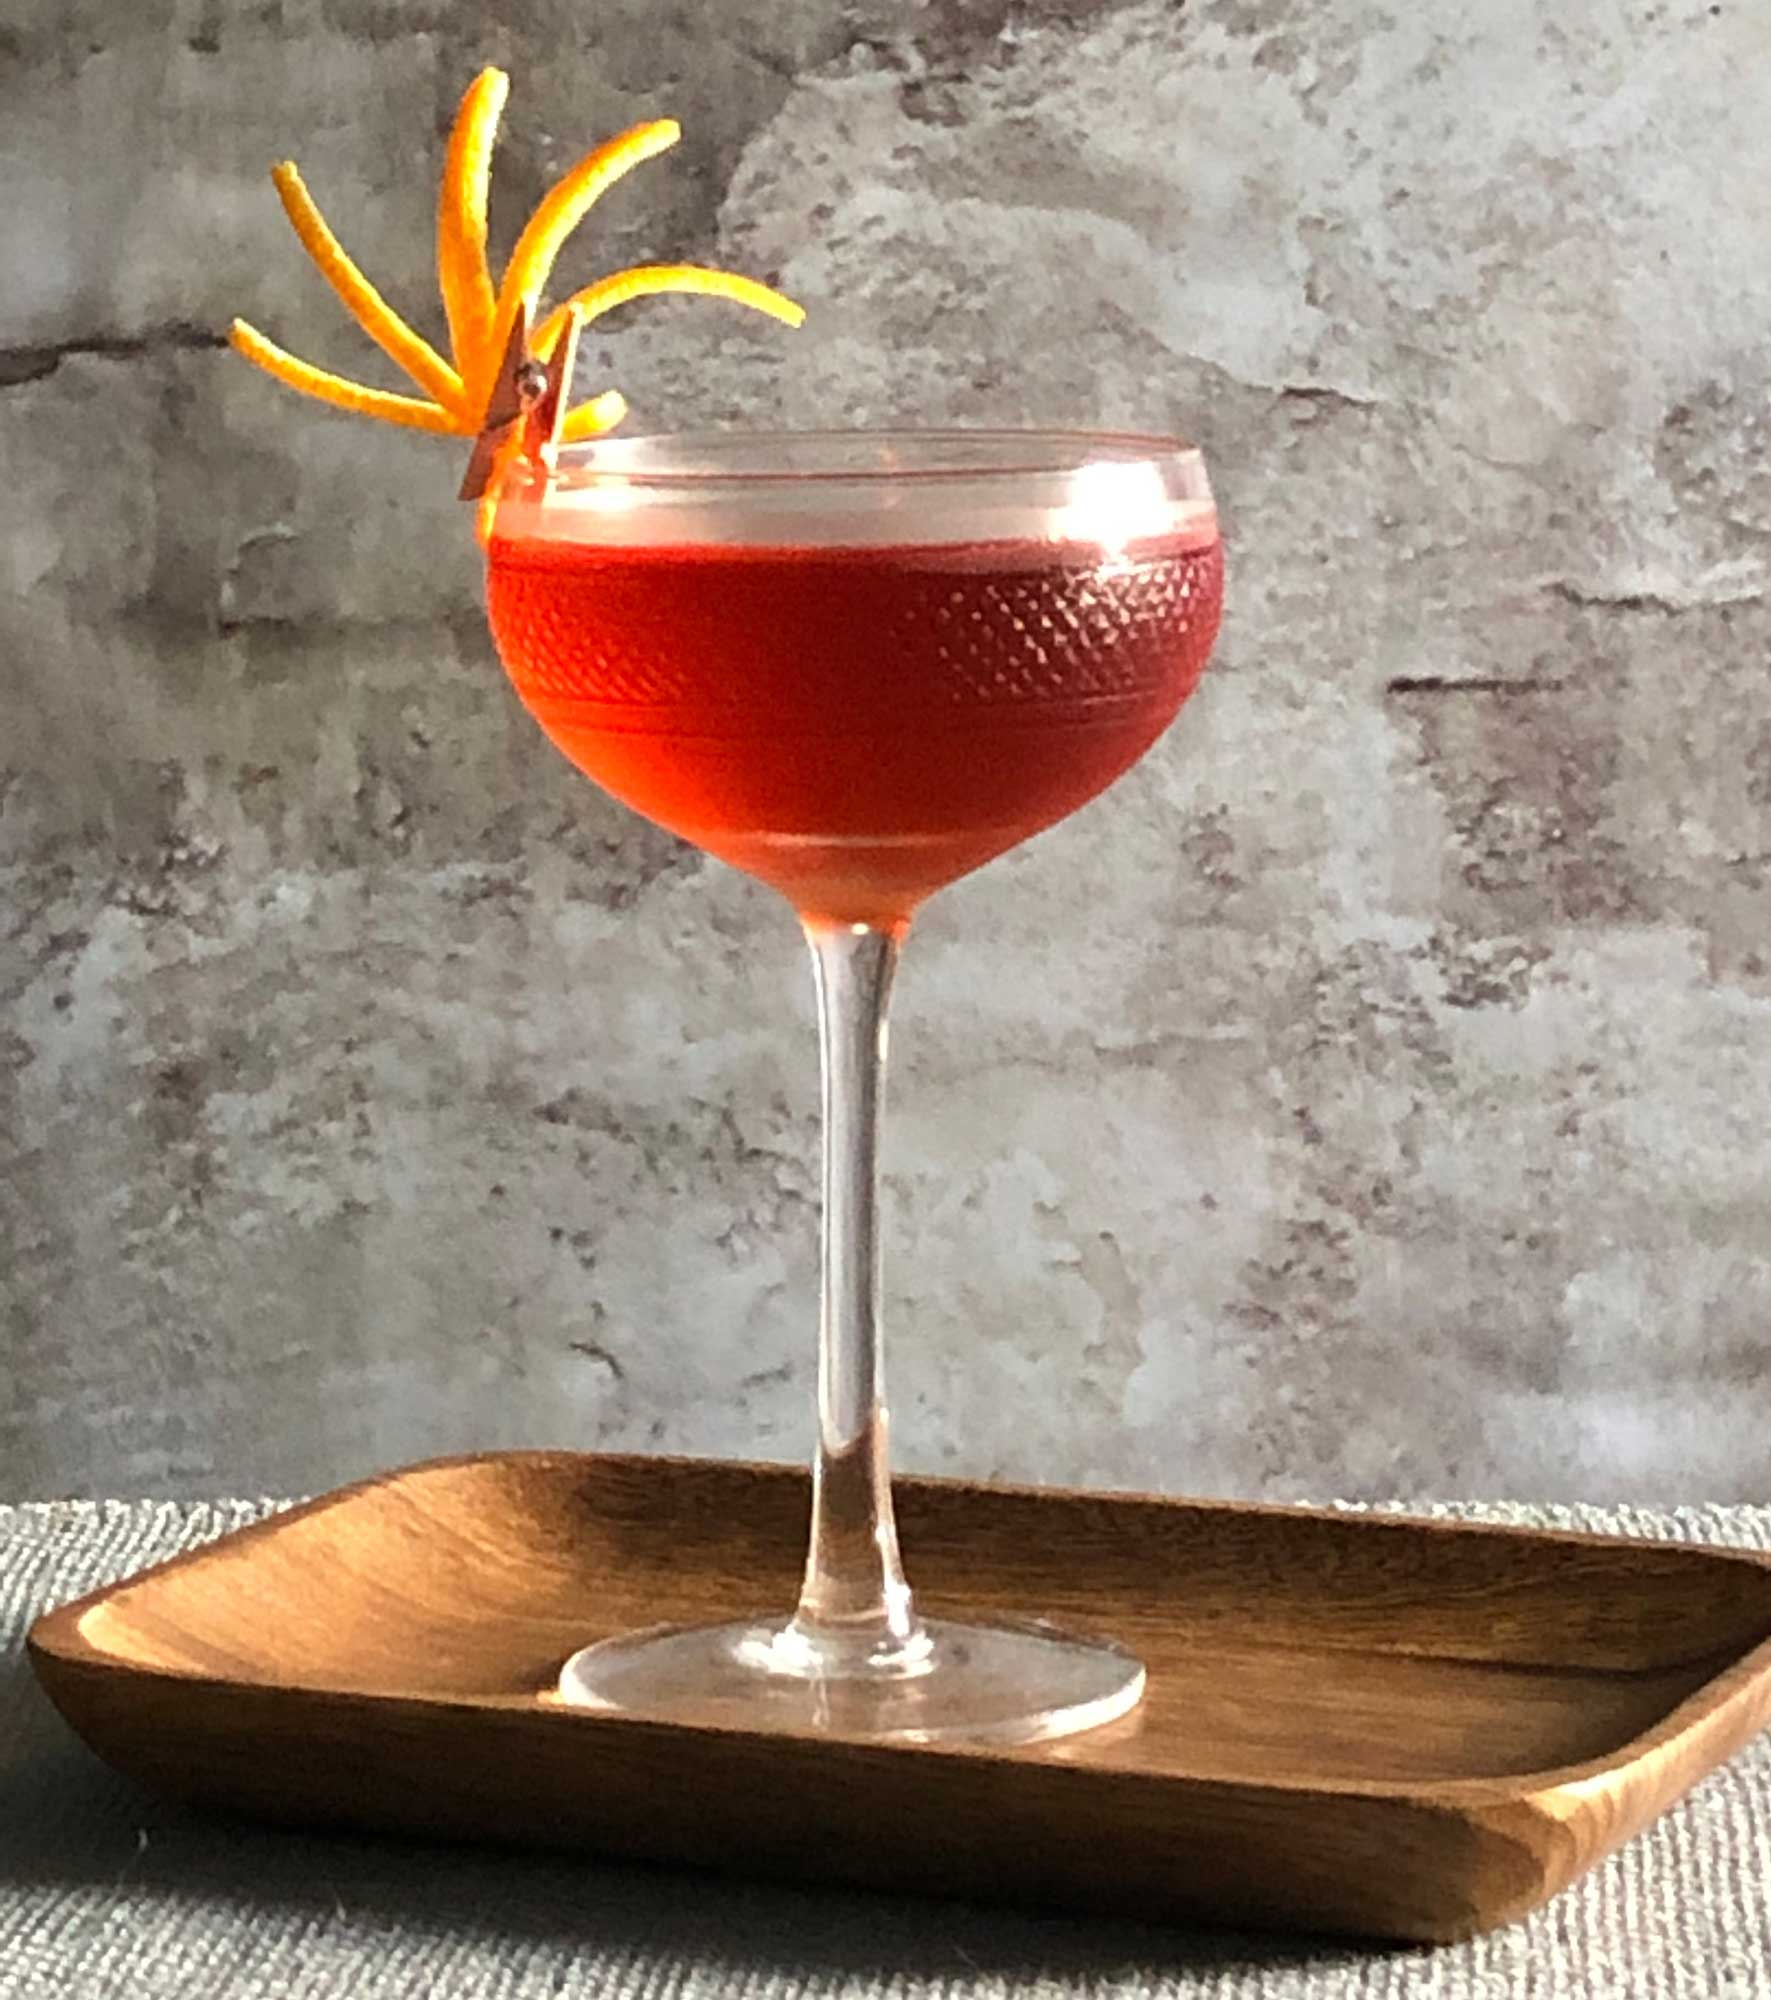 An example of the Negroni Rosa, the mixed drink (cocktail) featuring Hayman's London Dry Gin, Cocchi Americano Rosa, and Aperitivo Cappelletti; photo by Lee Edwards